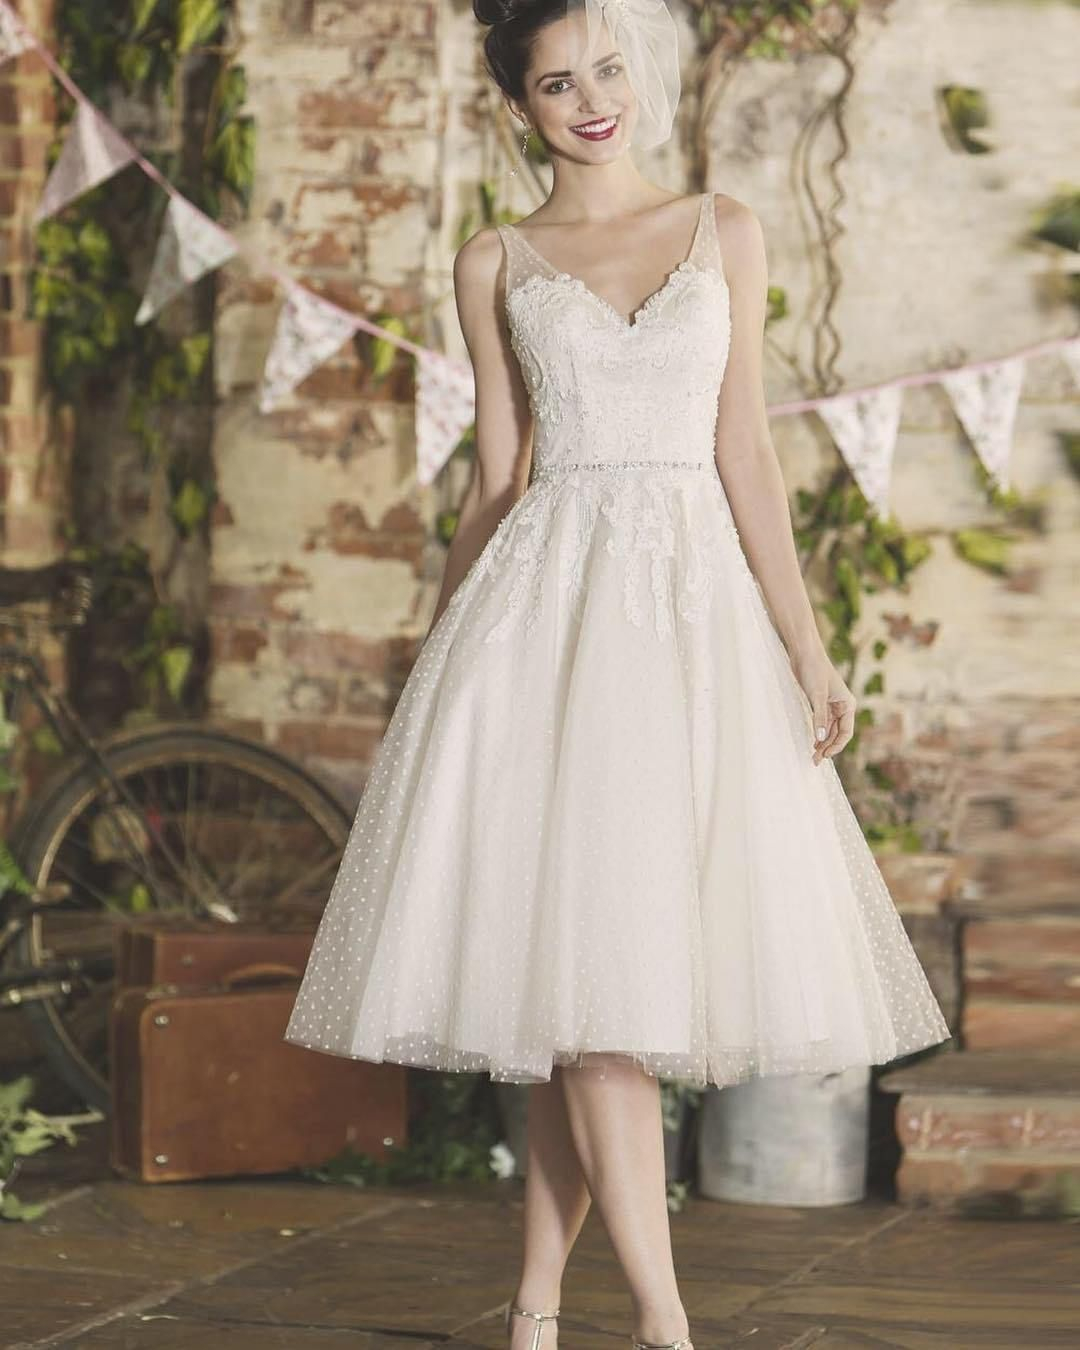 40 Short Dresses For A Backyard Wedding Ideas 25 Wedding Dresses intended for 14 Smart Initiatives of How to Upgrade Backyard Wedding Dress Ideas